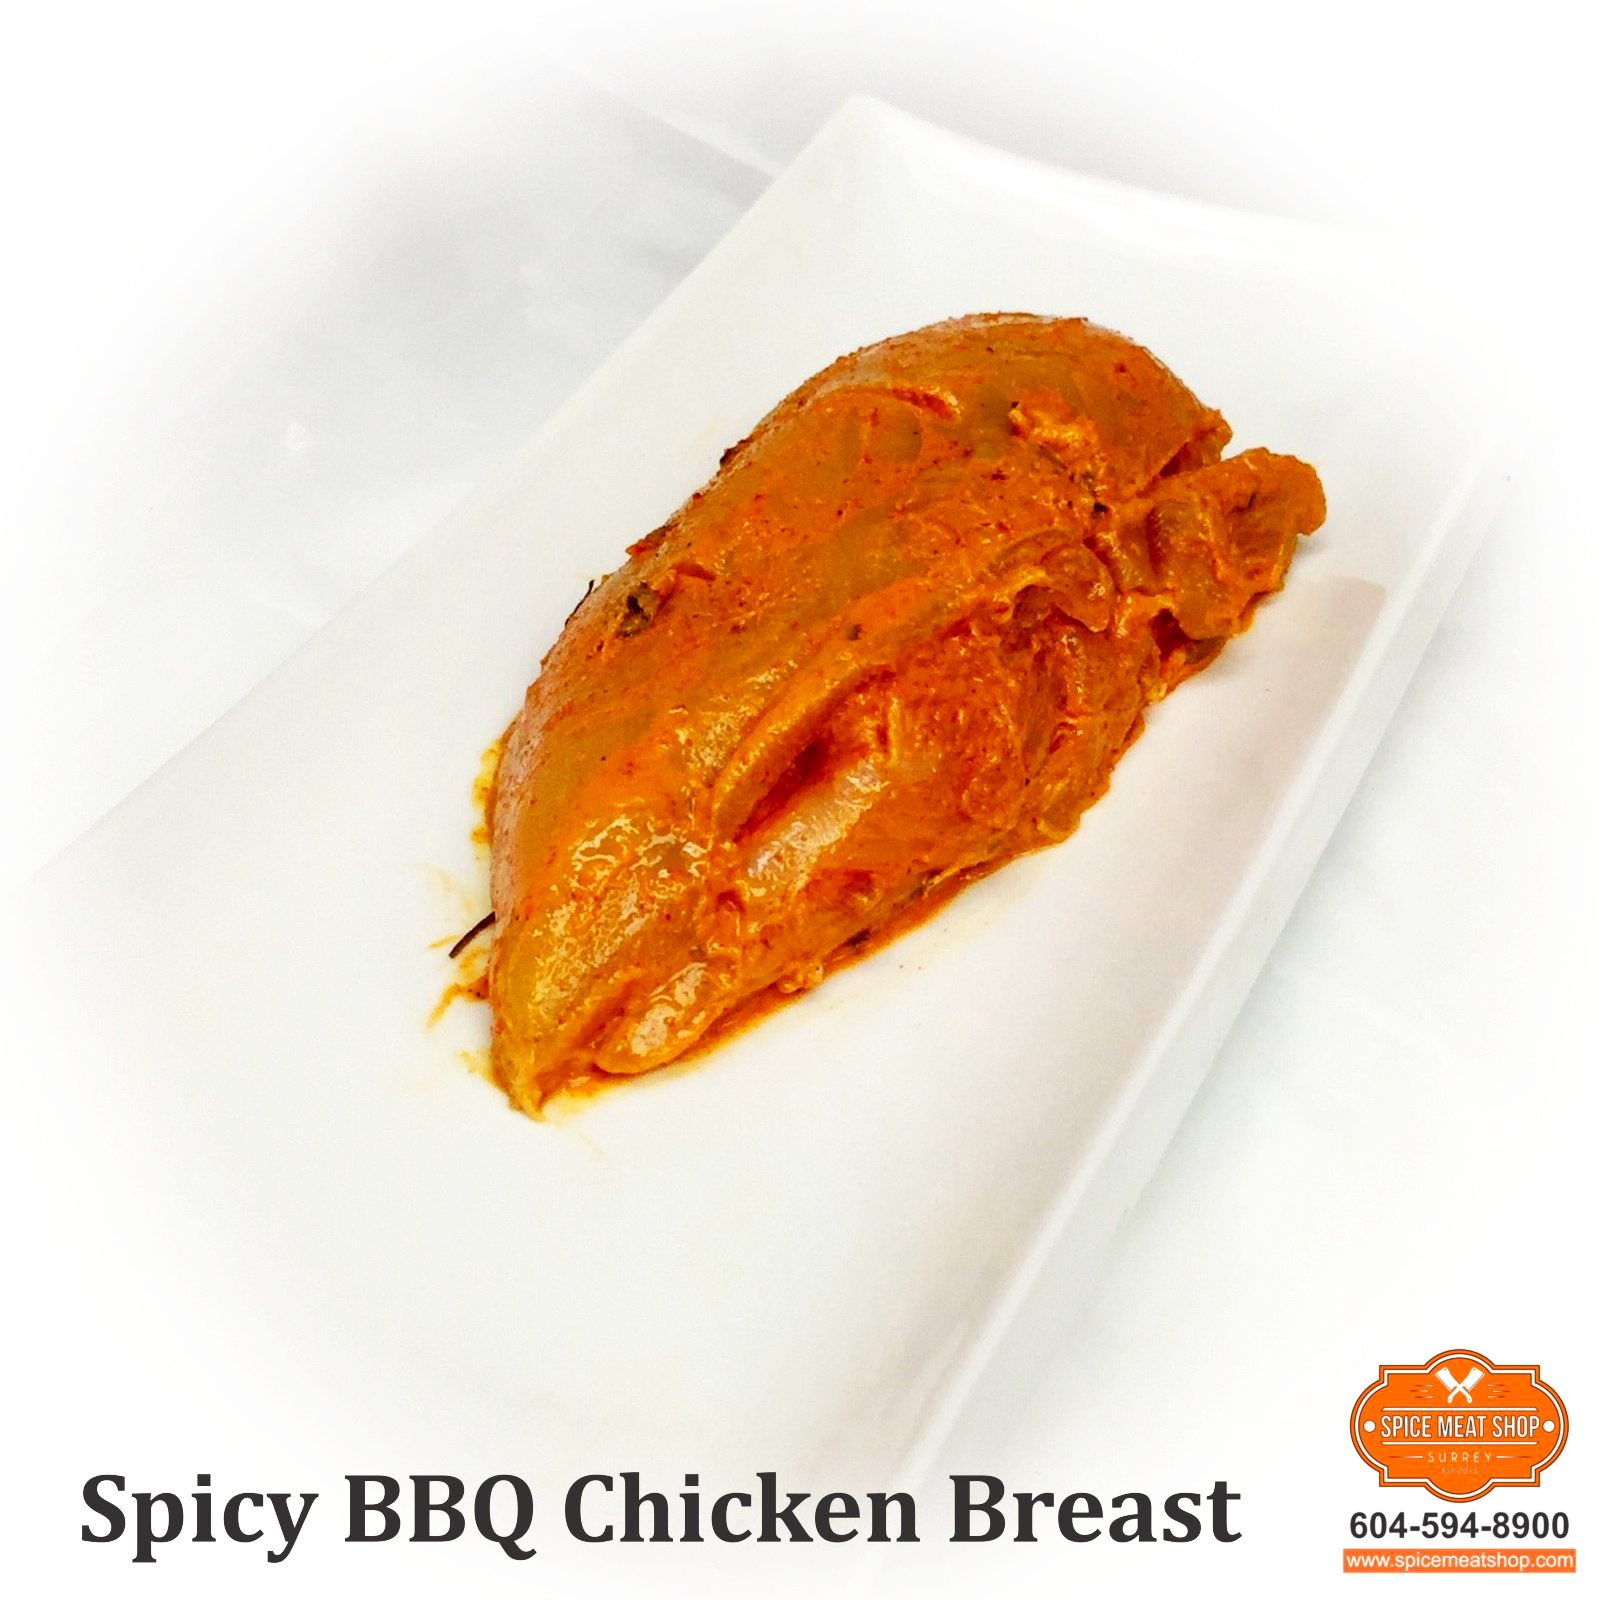 Spicy BBQ Chicken Breast